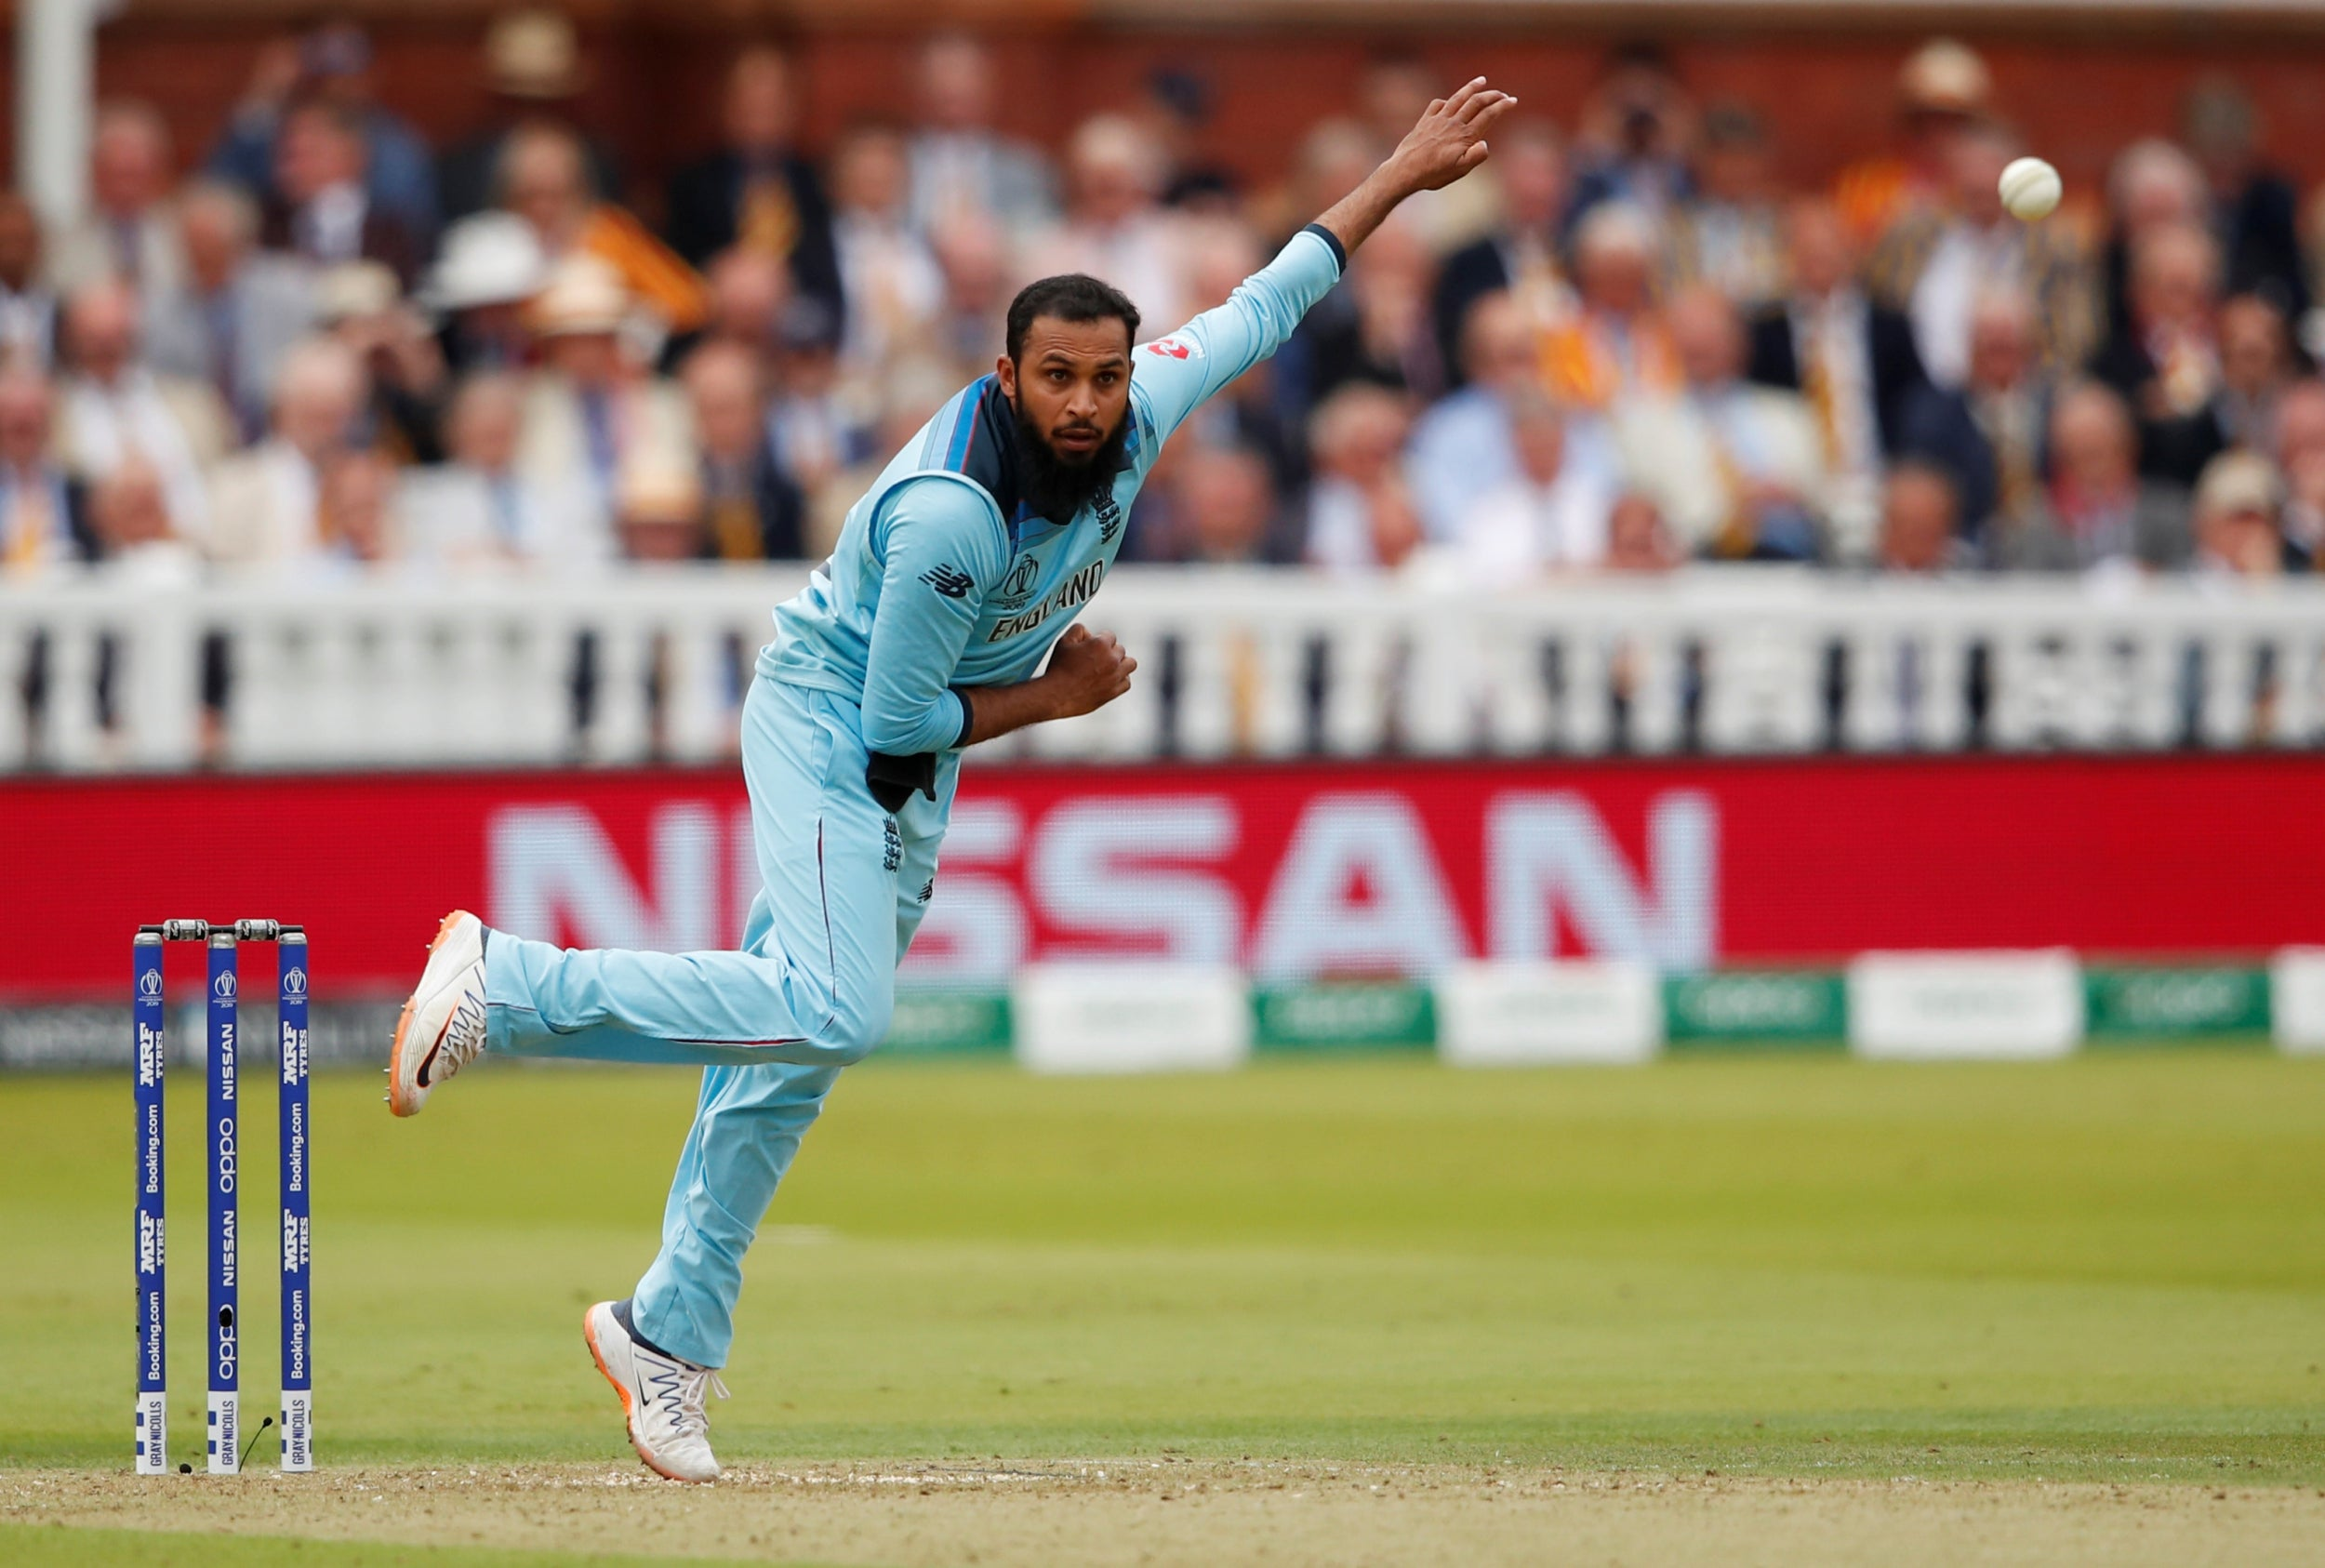 Cricket World Cup 2019: England players write themselves